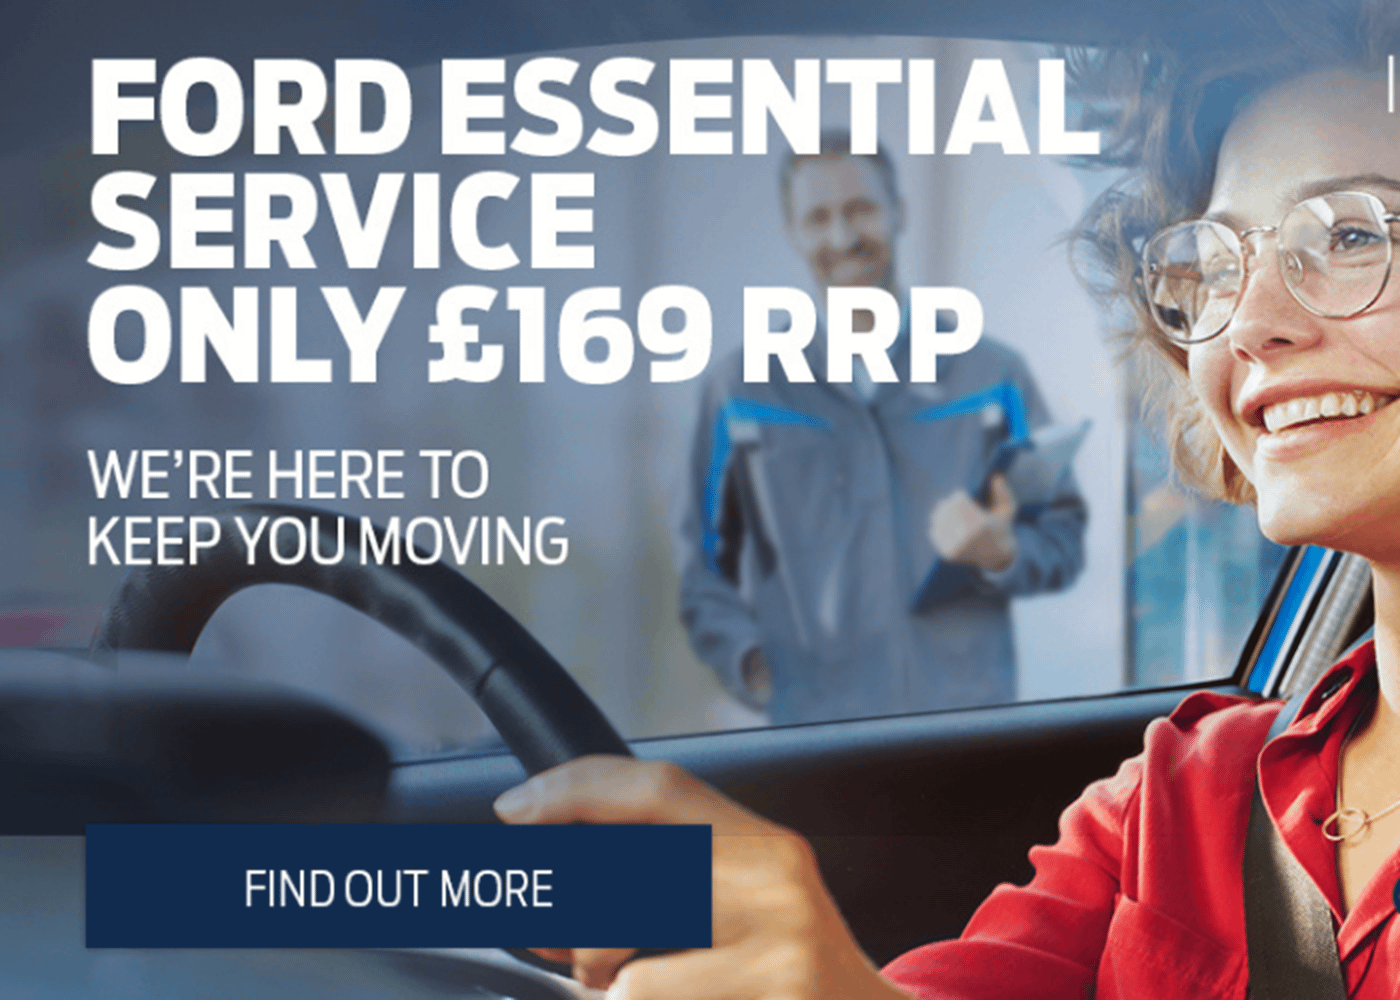 Ford Essential Service